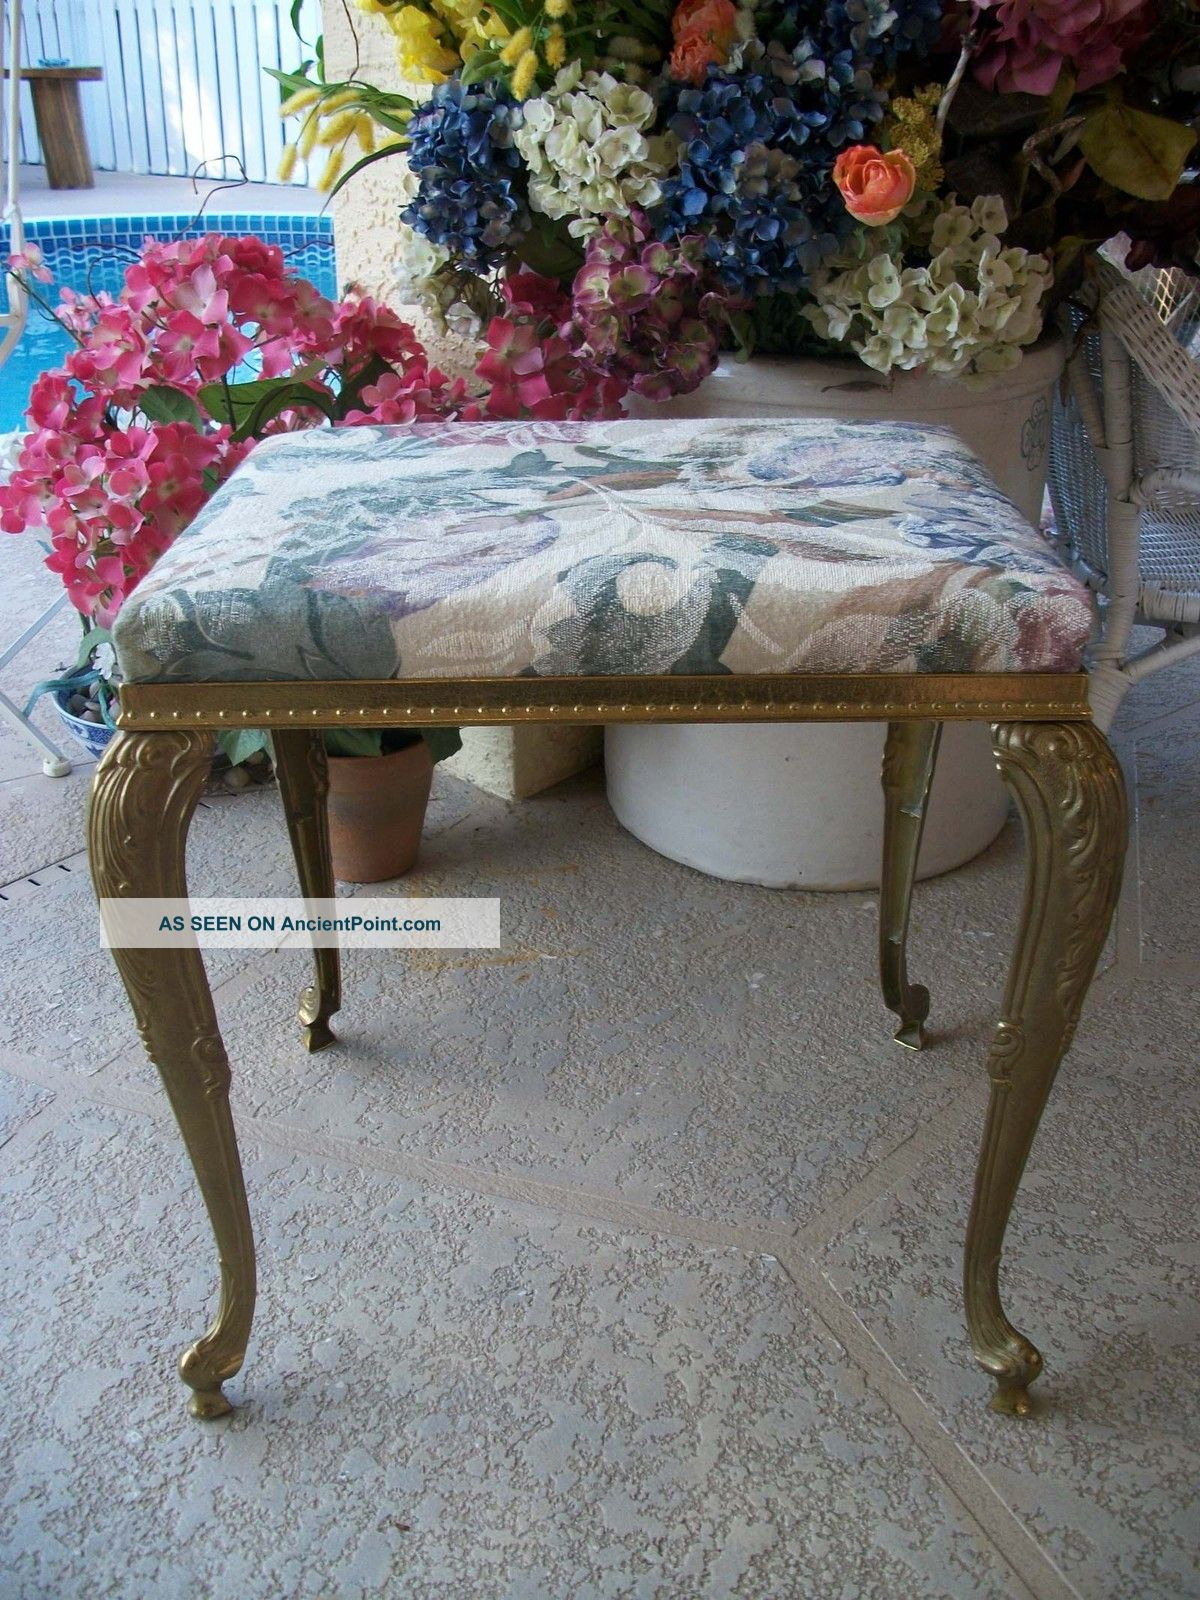 Vintage Italian Mod Dep Glam Gold Metal Vanity Stool Bench Chair Decor Queen Ann Post-1950 photo